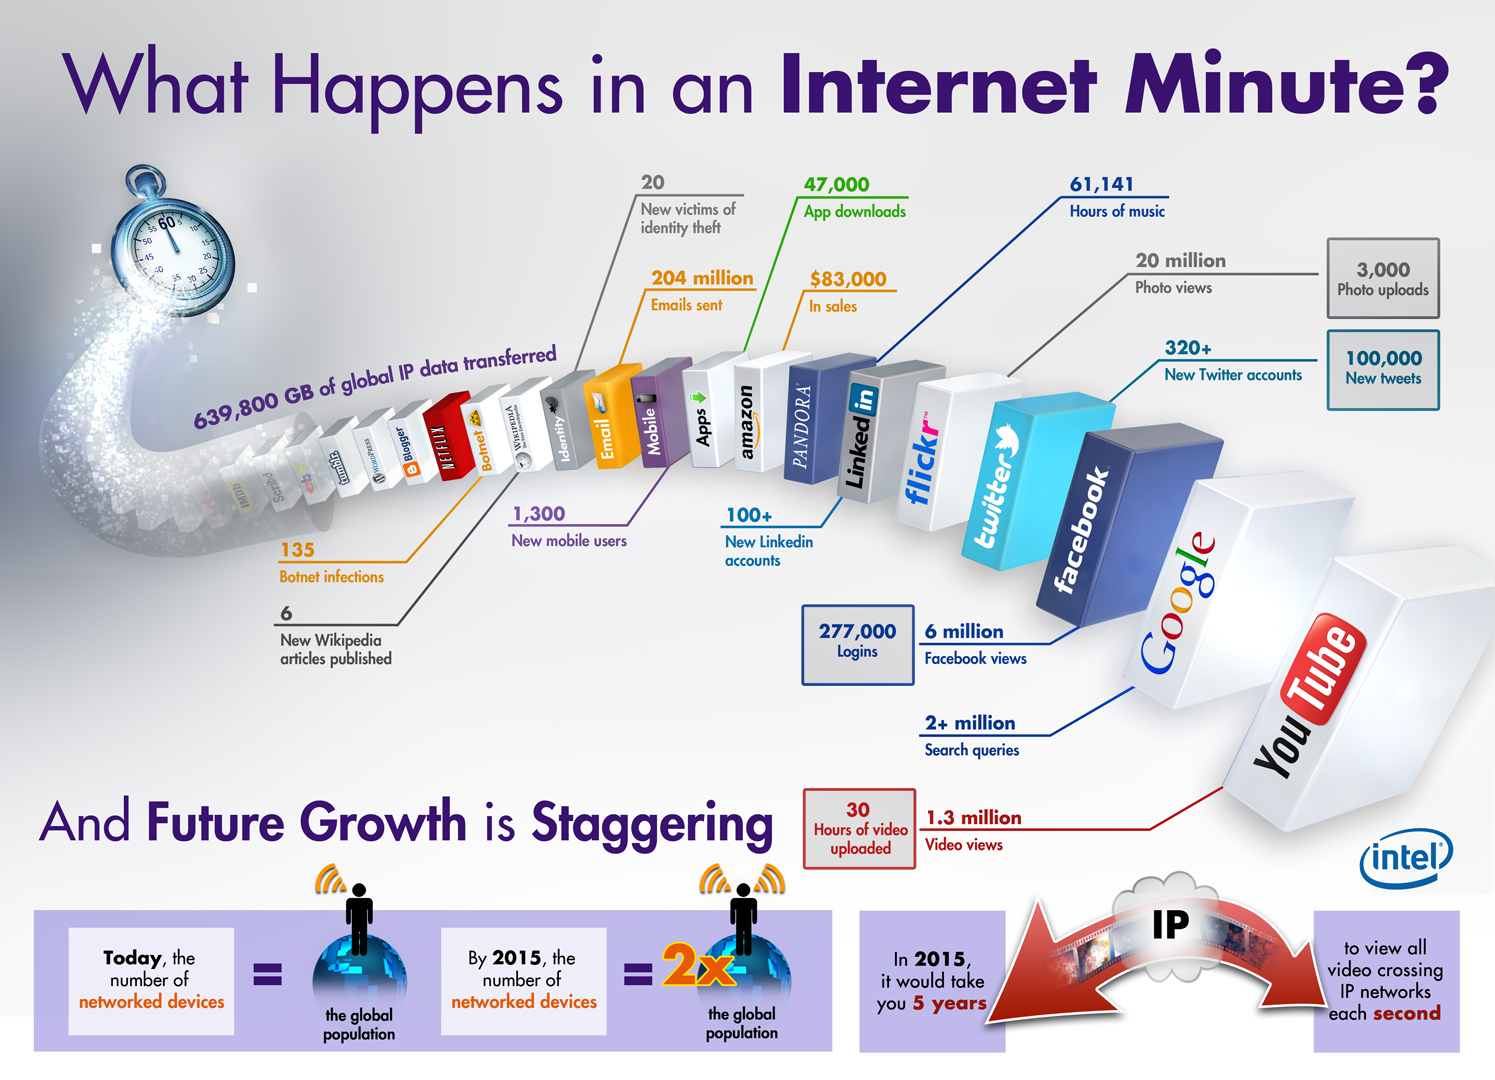 One Internet minute